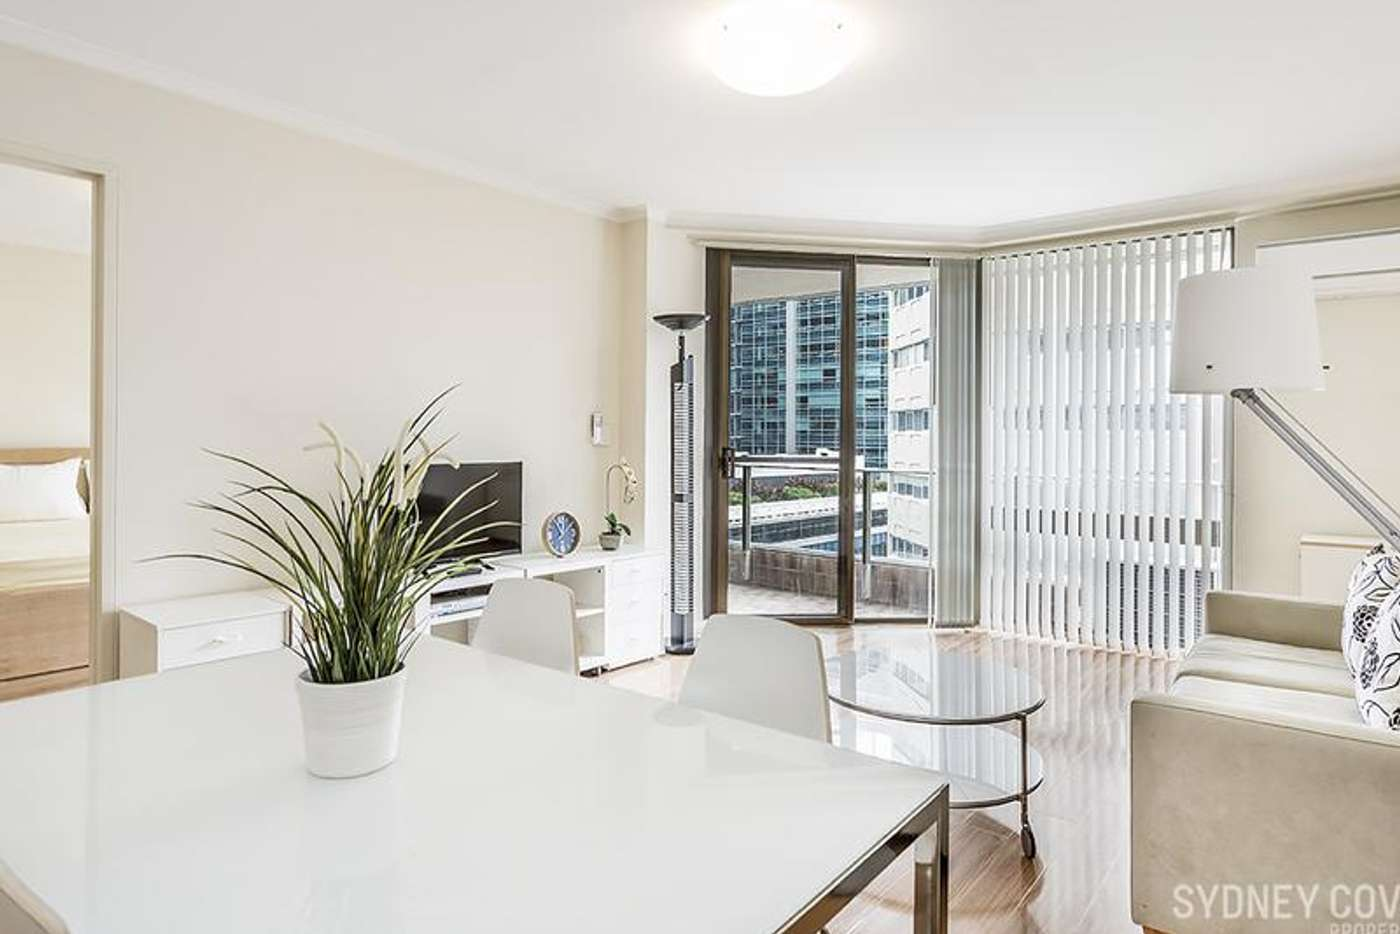 Main view of Homely apartment listing, 25 Market Street, Sydney NSW 2000